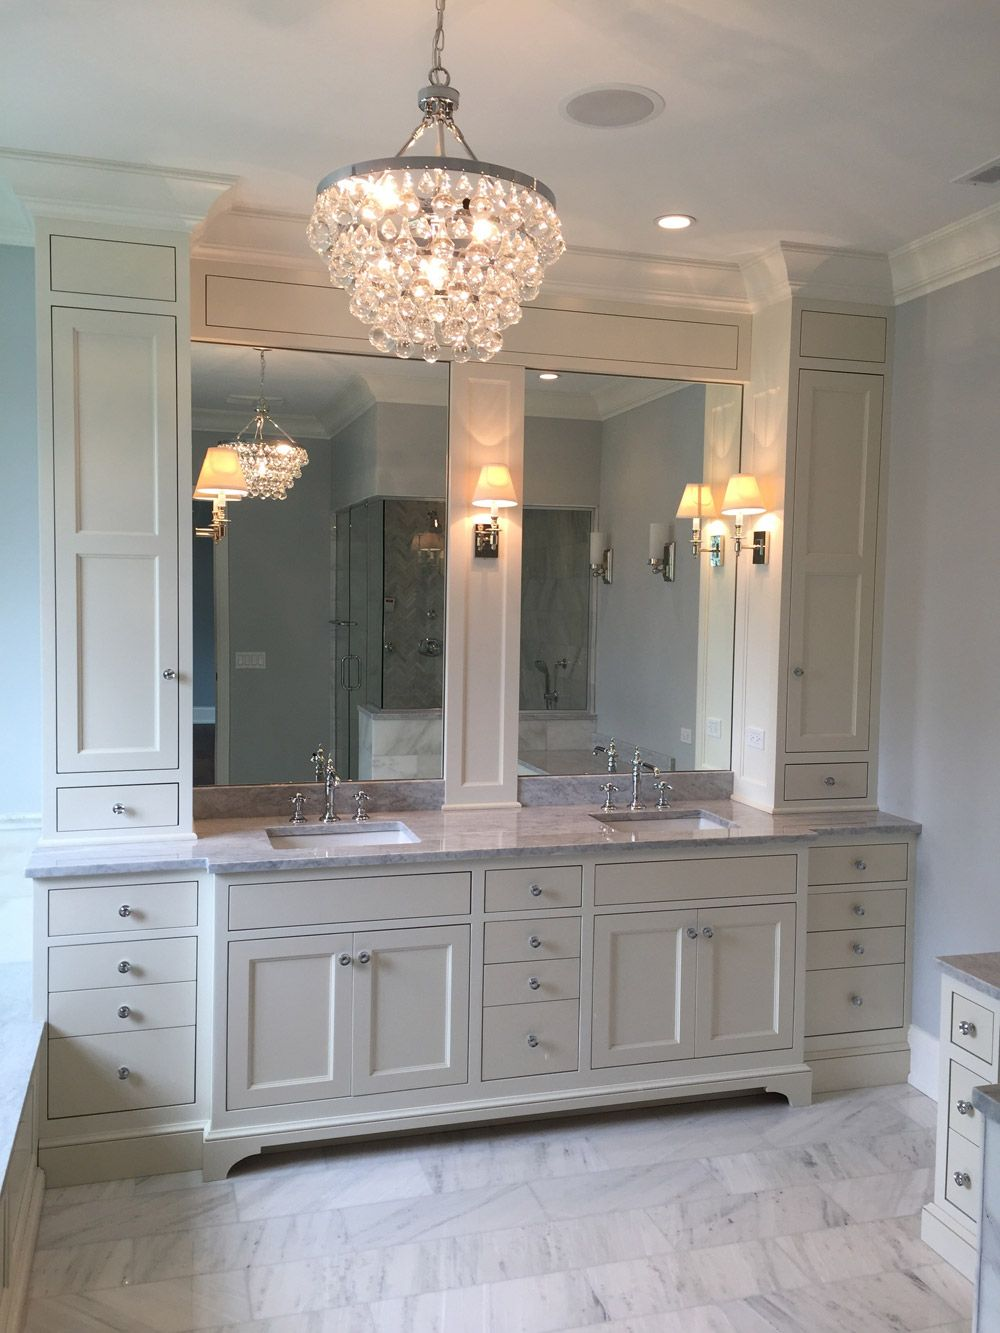 Custom Bathroom Vanities Mn custom closet design portfolio | chicago closets, cabinets and